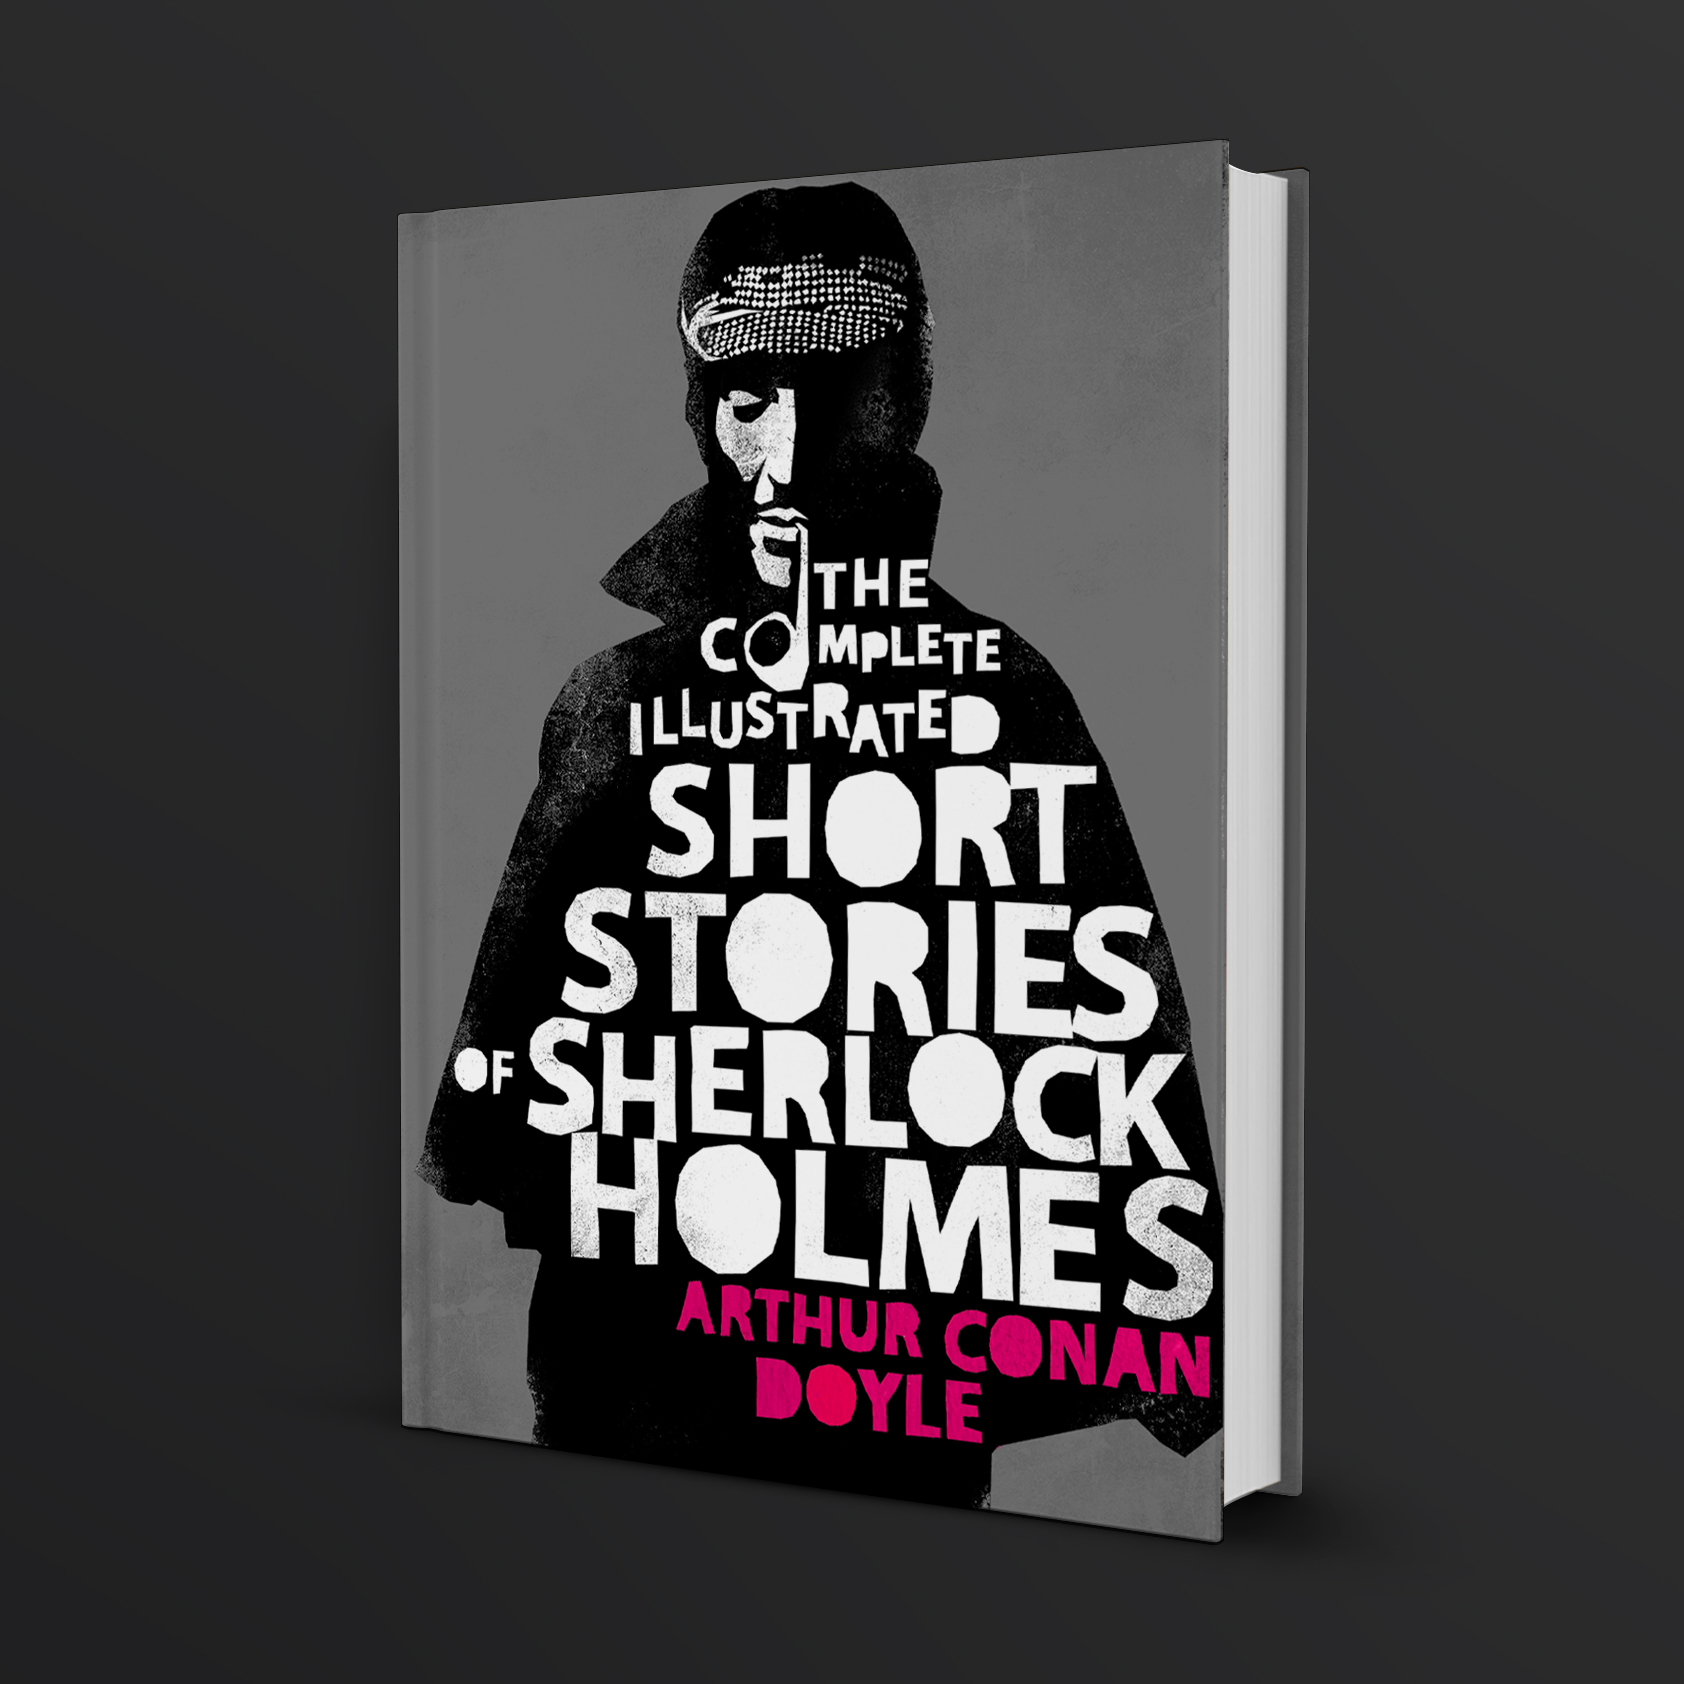 - Another dusty book project where I have restyled an old classic, The Complete Illustrated Short Stories of Sherlock Holmes with a screen print effect. A modern typographic approach where the letter 'o' of the word 'complete' is creating the shape of Sherlocks pipe.